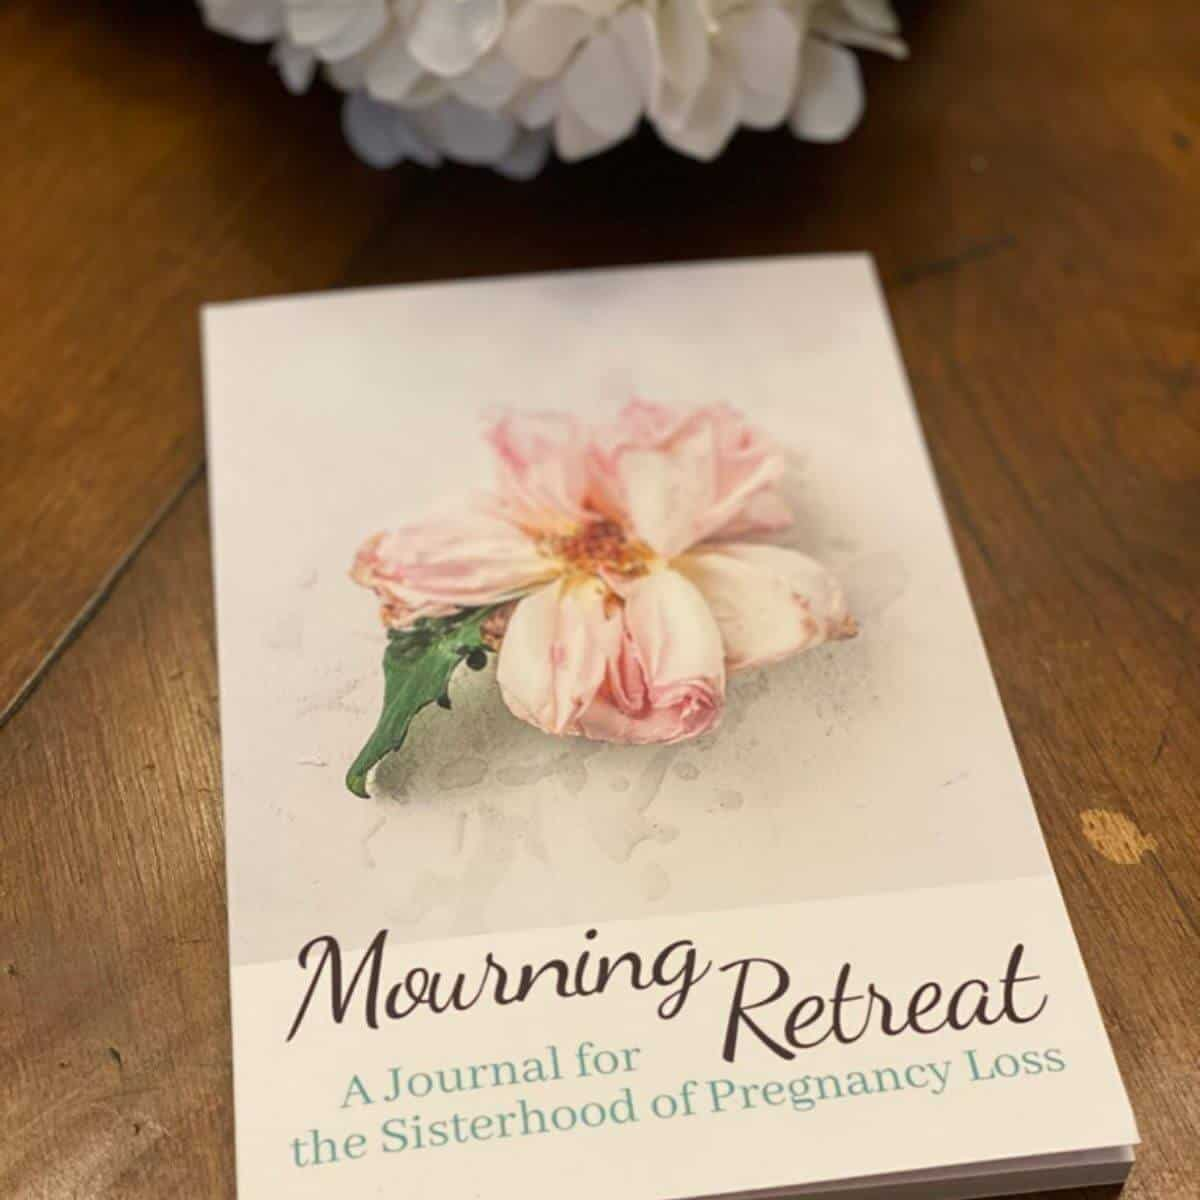 beautiful miscarriage journal called Mourning Retreat a journal for the sisterhood of pregnancy loss lying on a wooden surface with a beautiful flower on the cover